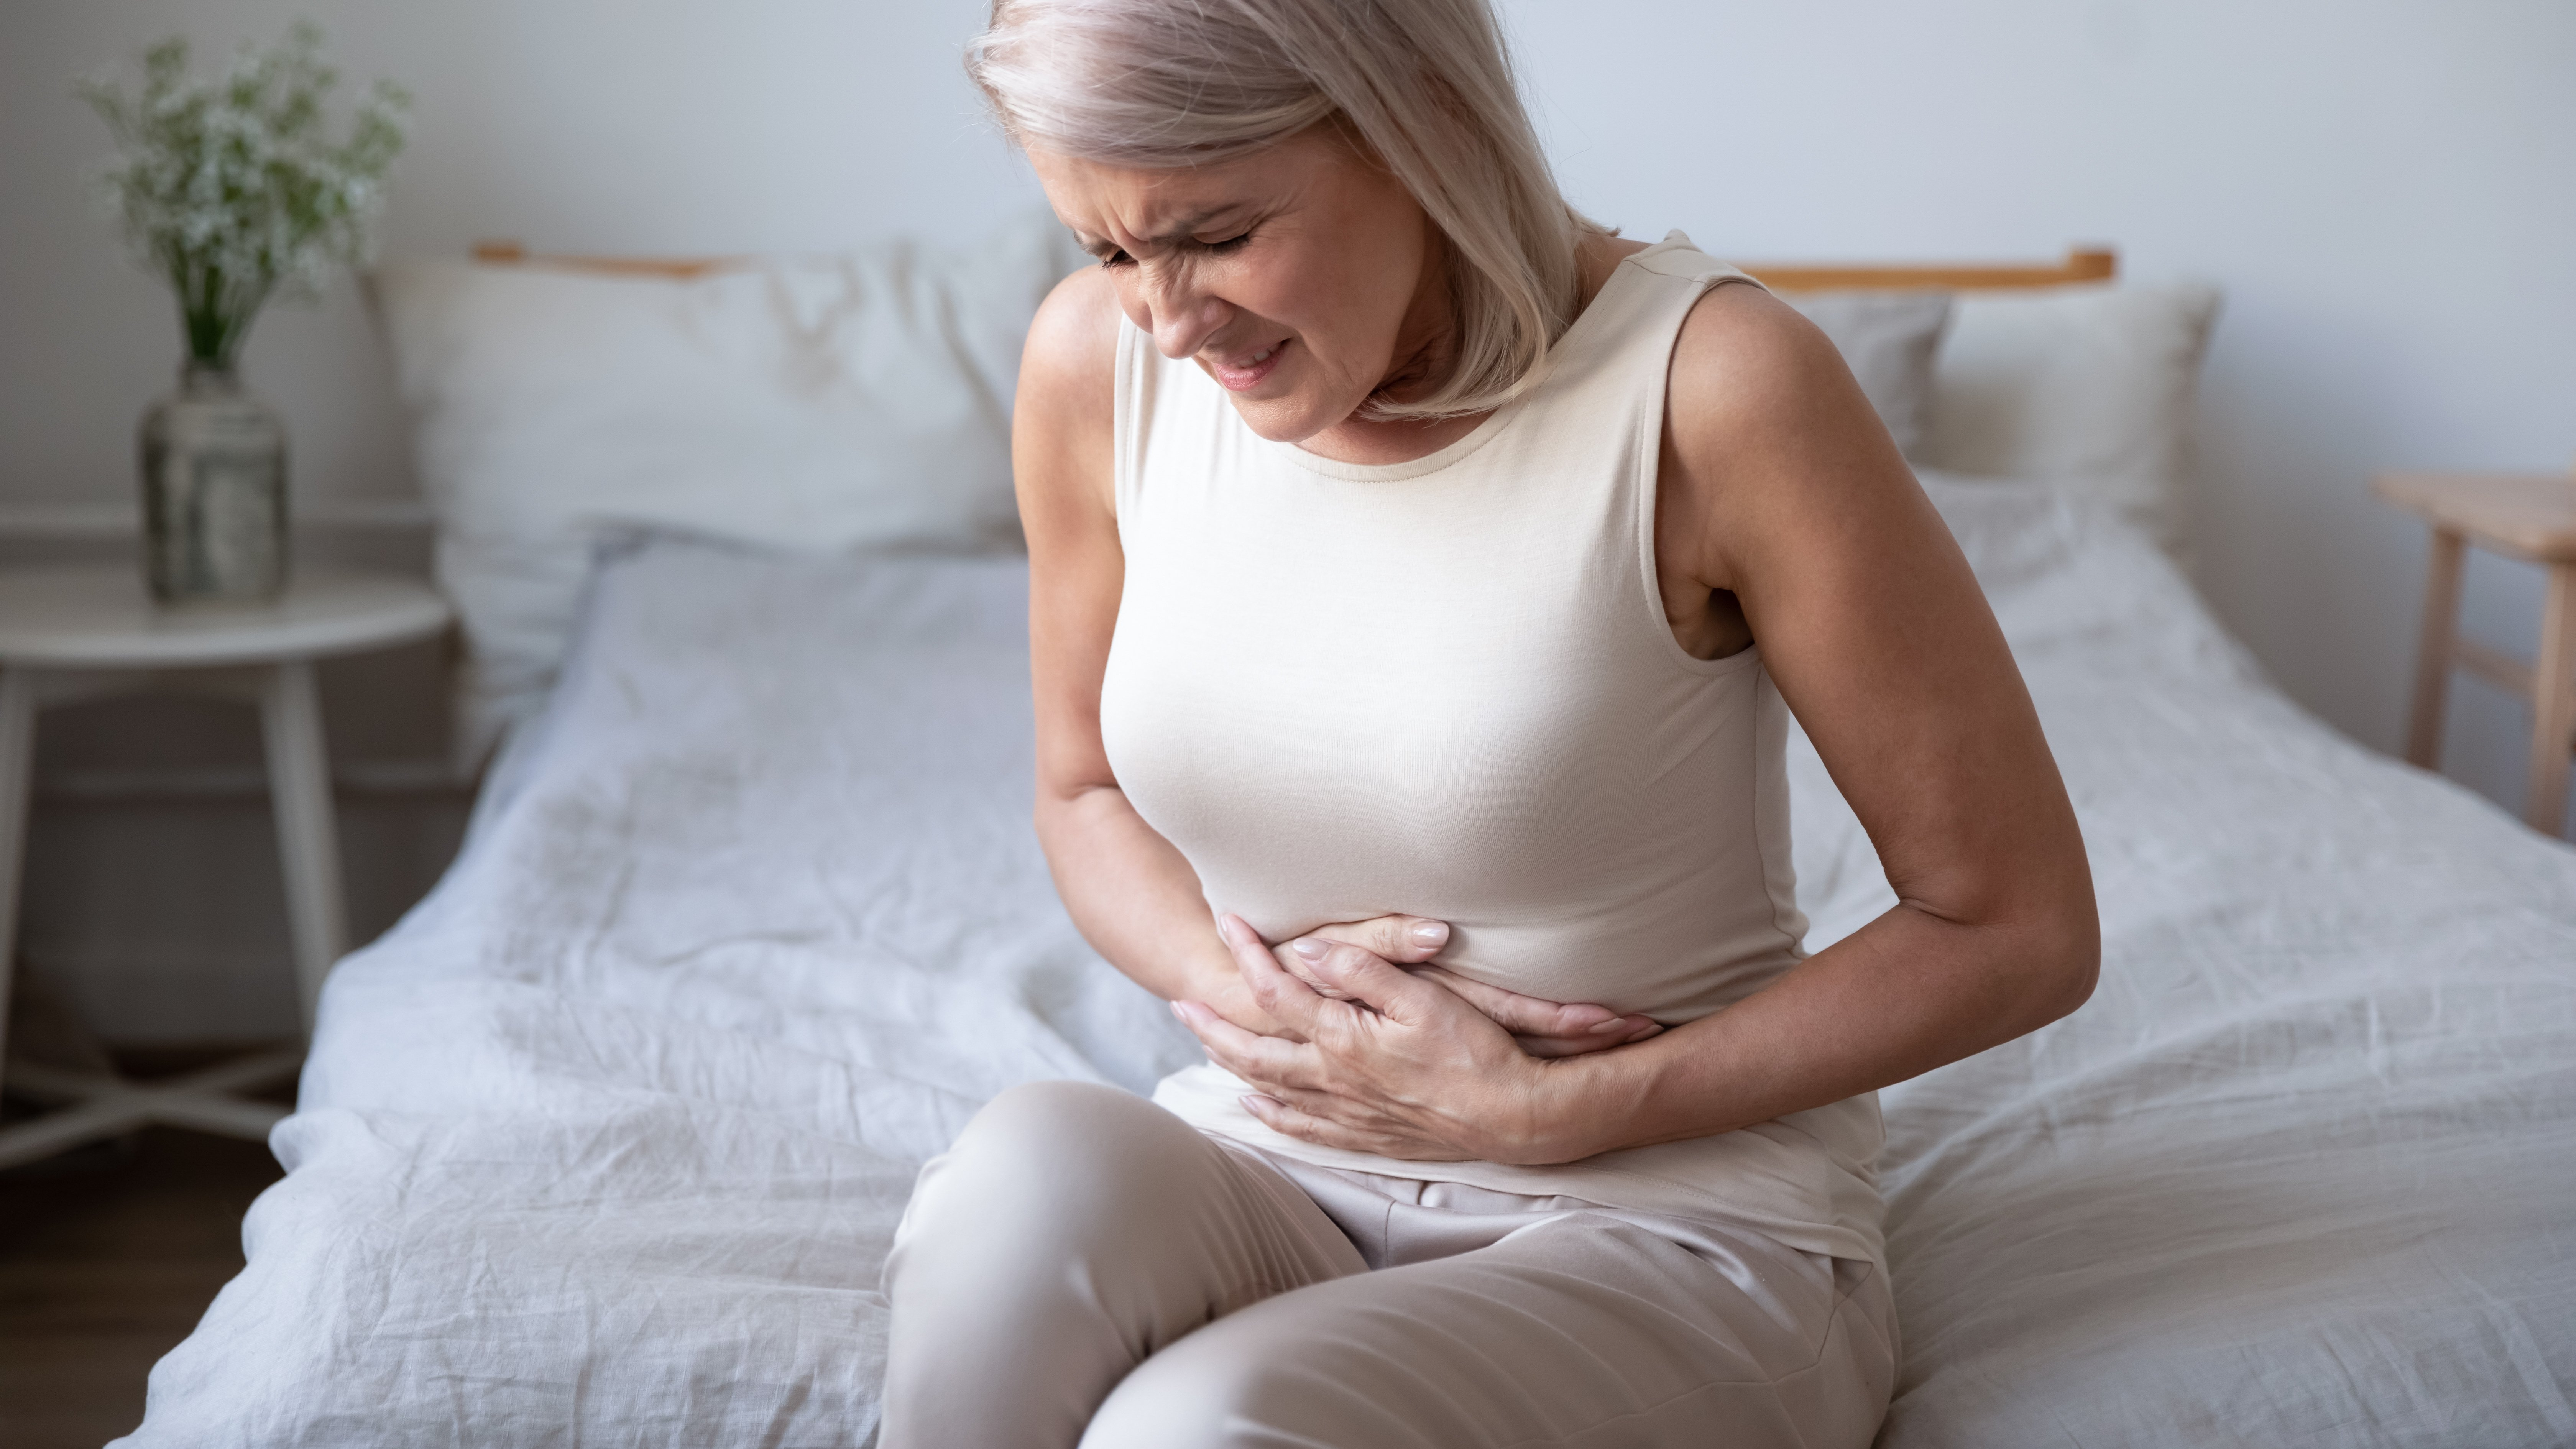 What Are the Symptoms of a UTI in the Elderly?